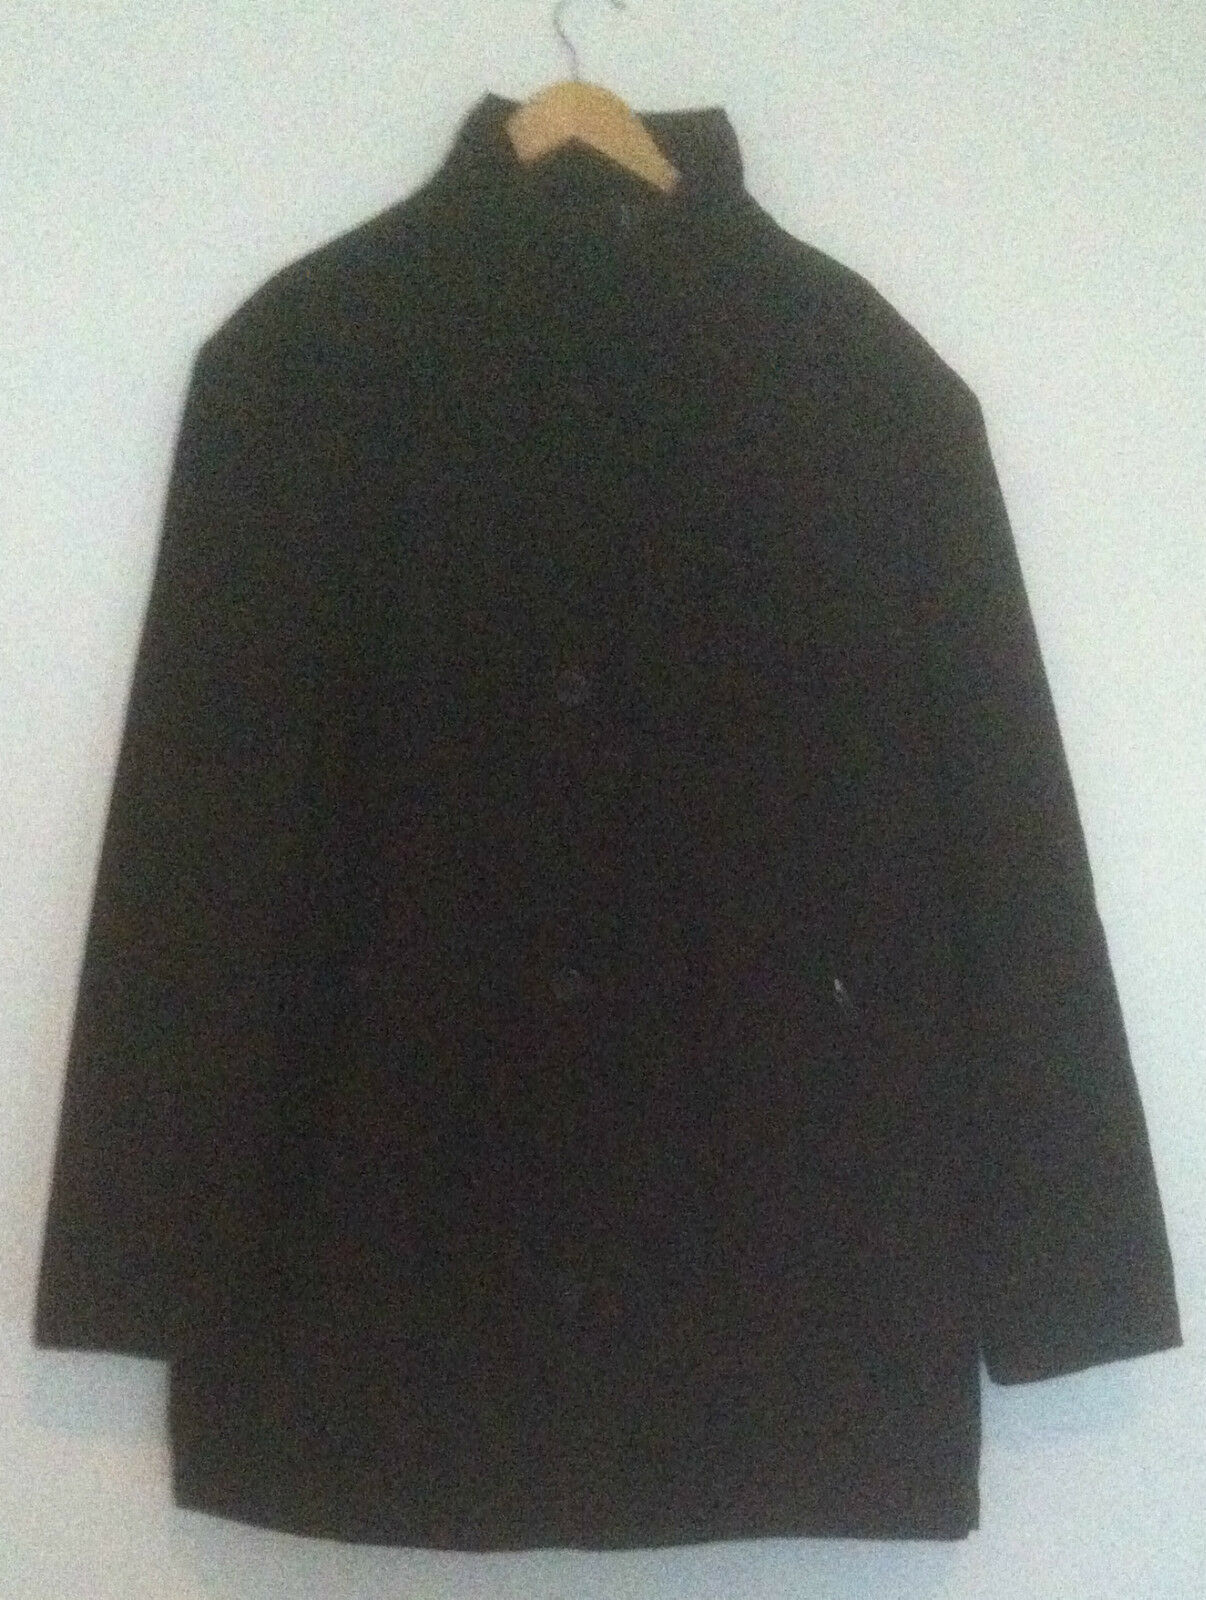 Gents Brown Coat from Marks and Spencers